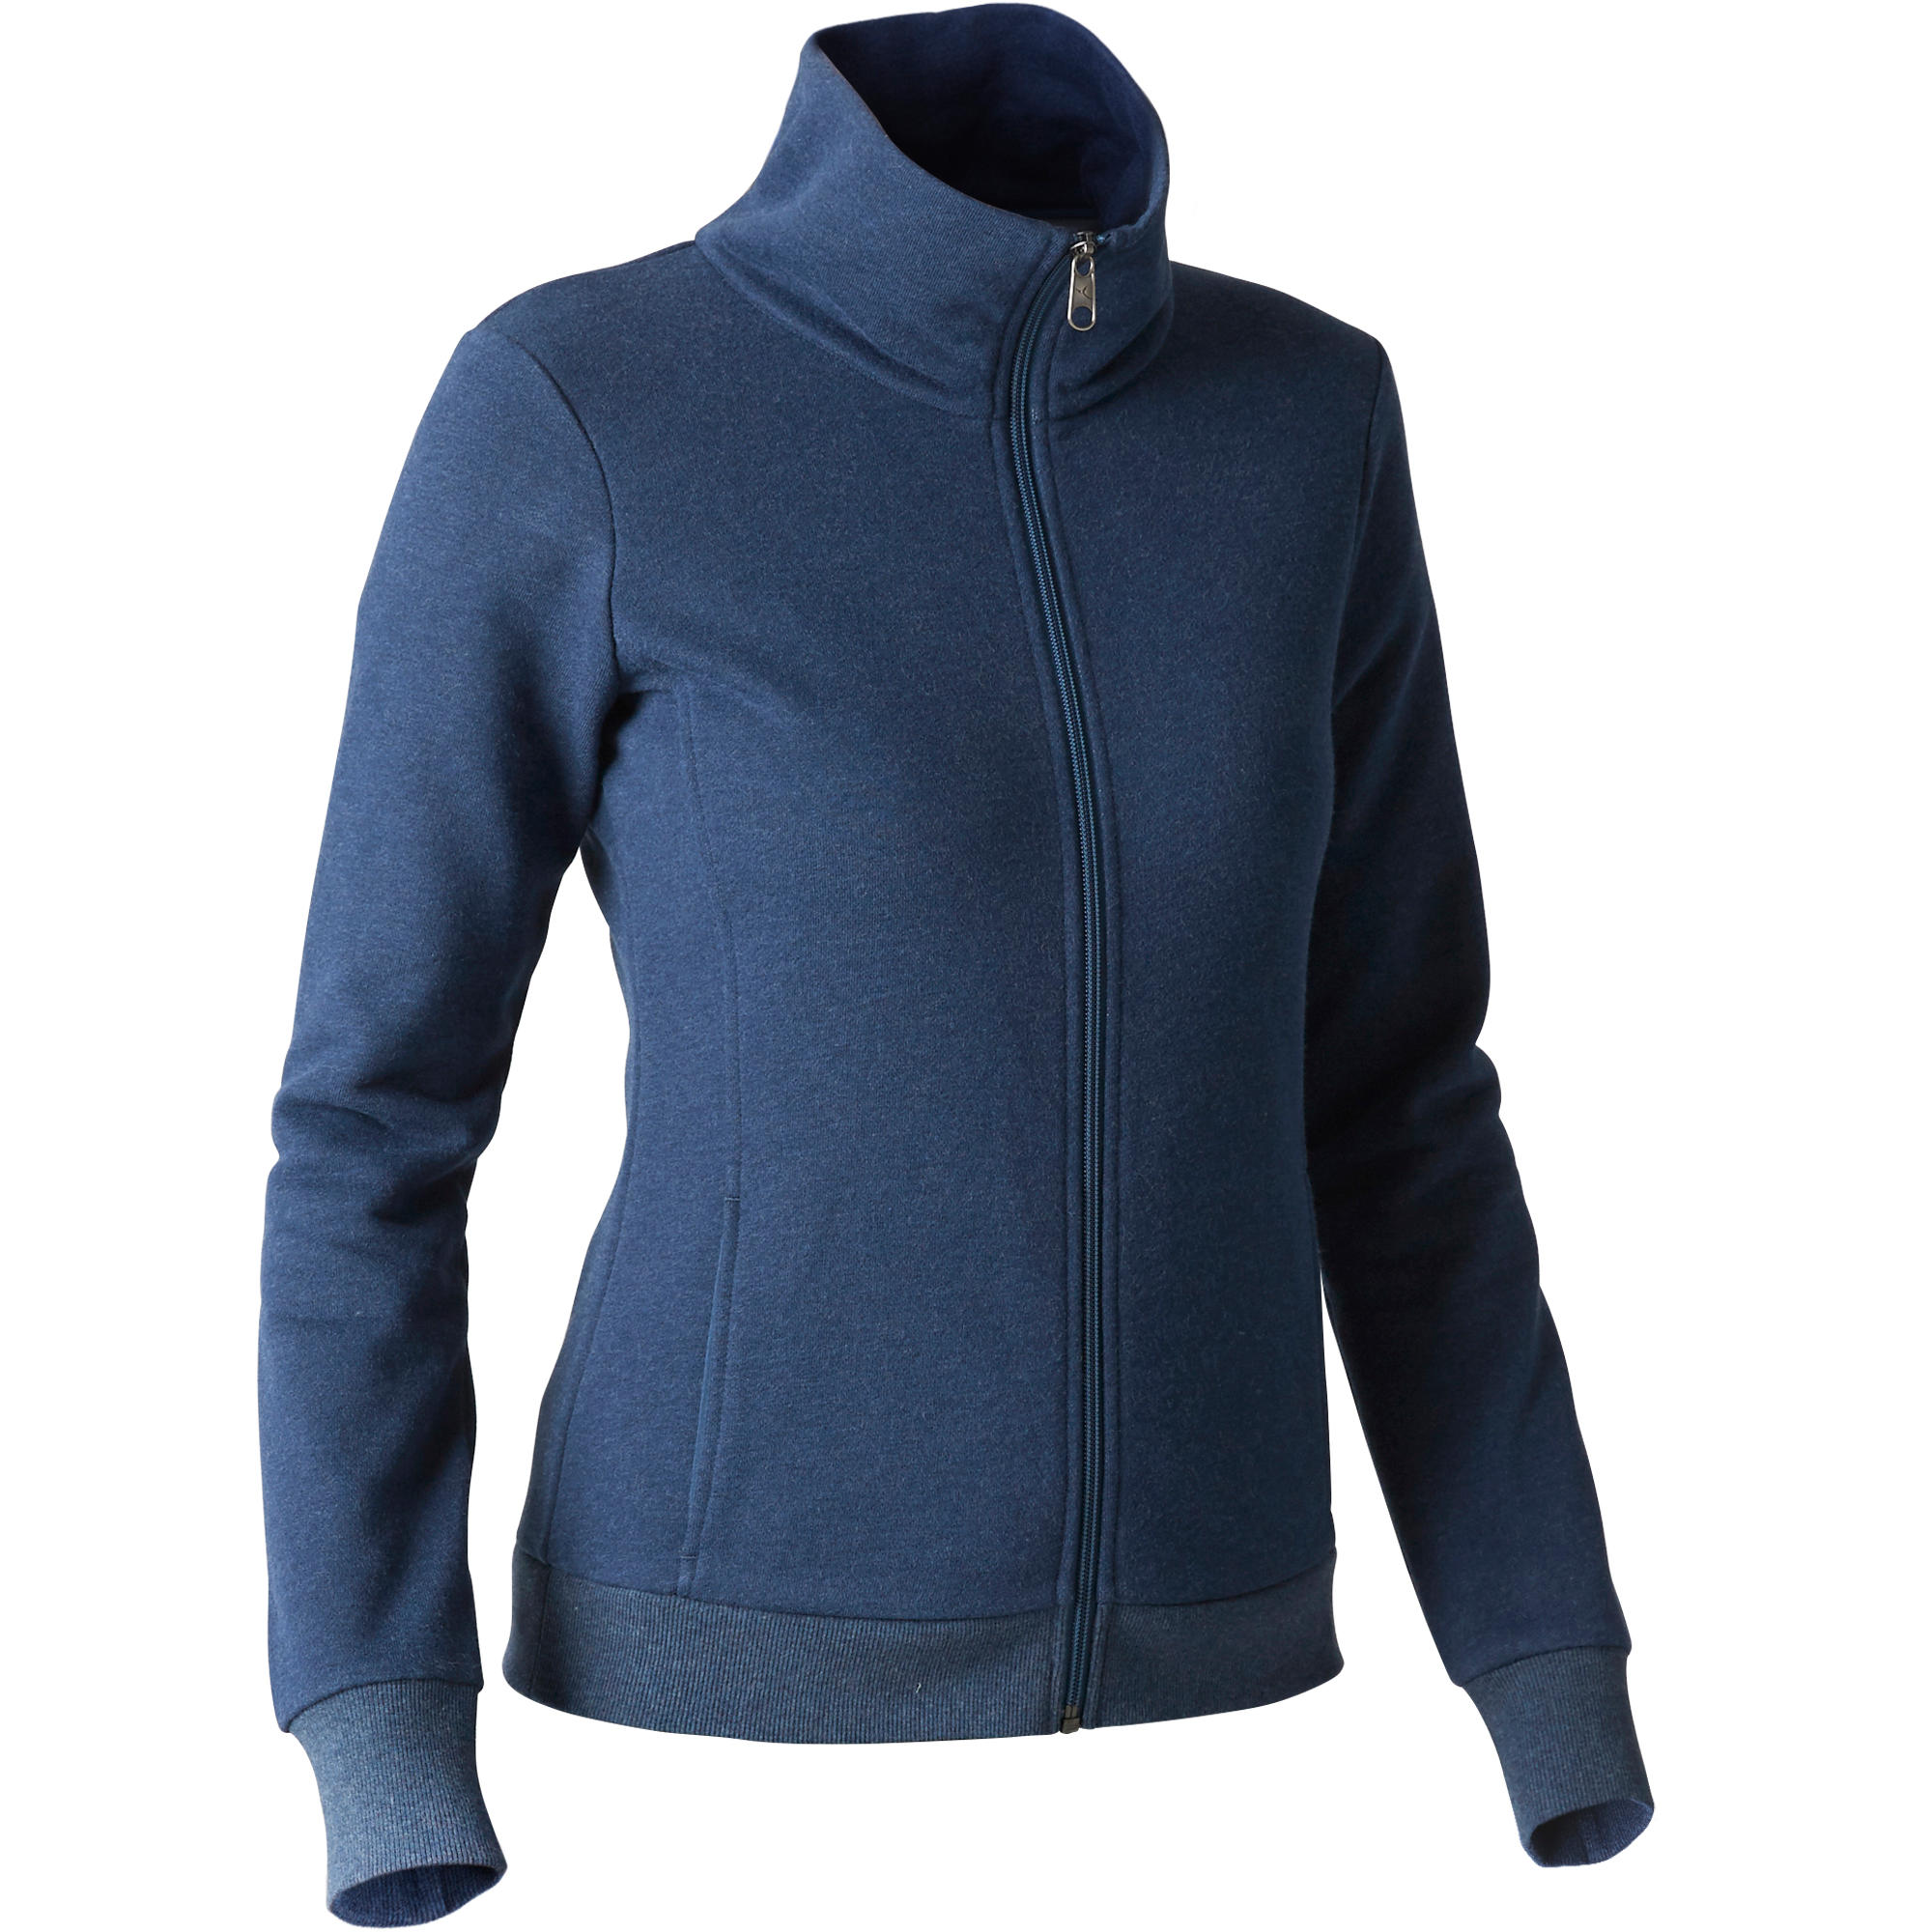 500 Women's High-Neck Gym Stretching Jacket - Mottled Blue